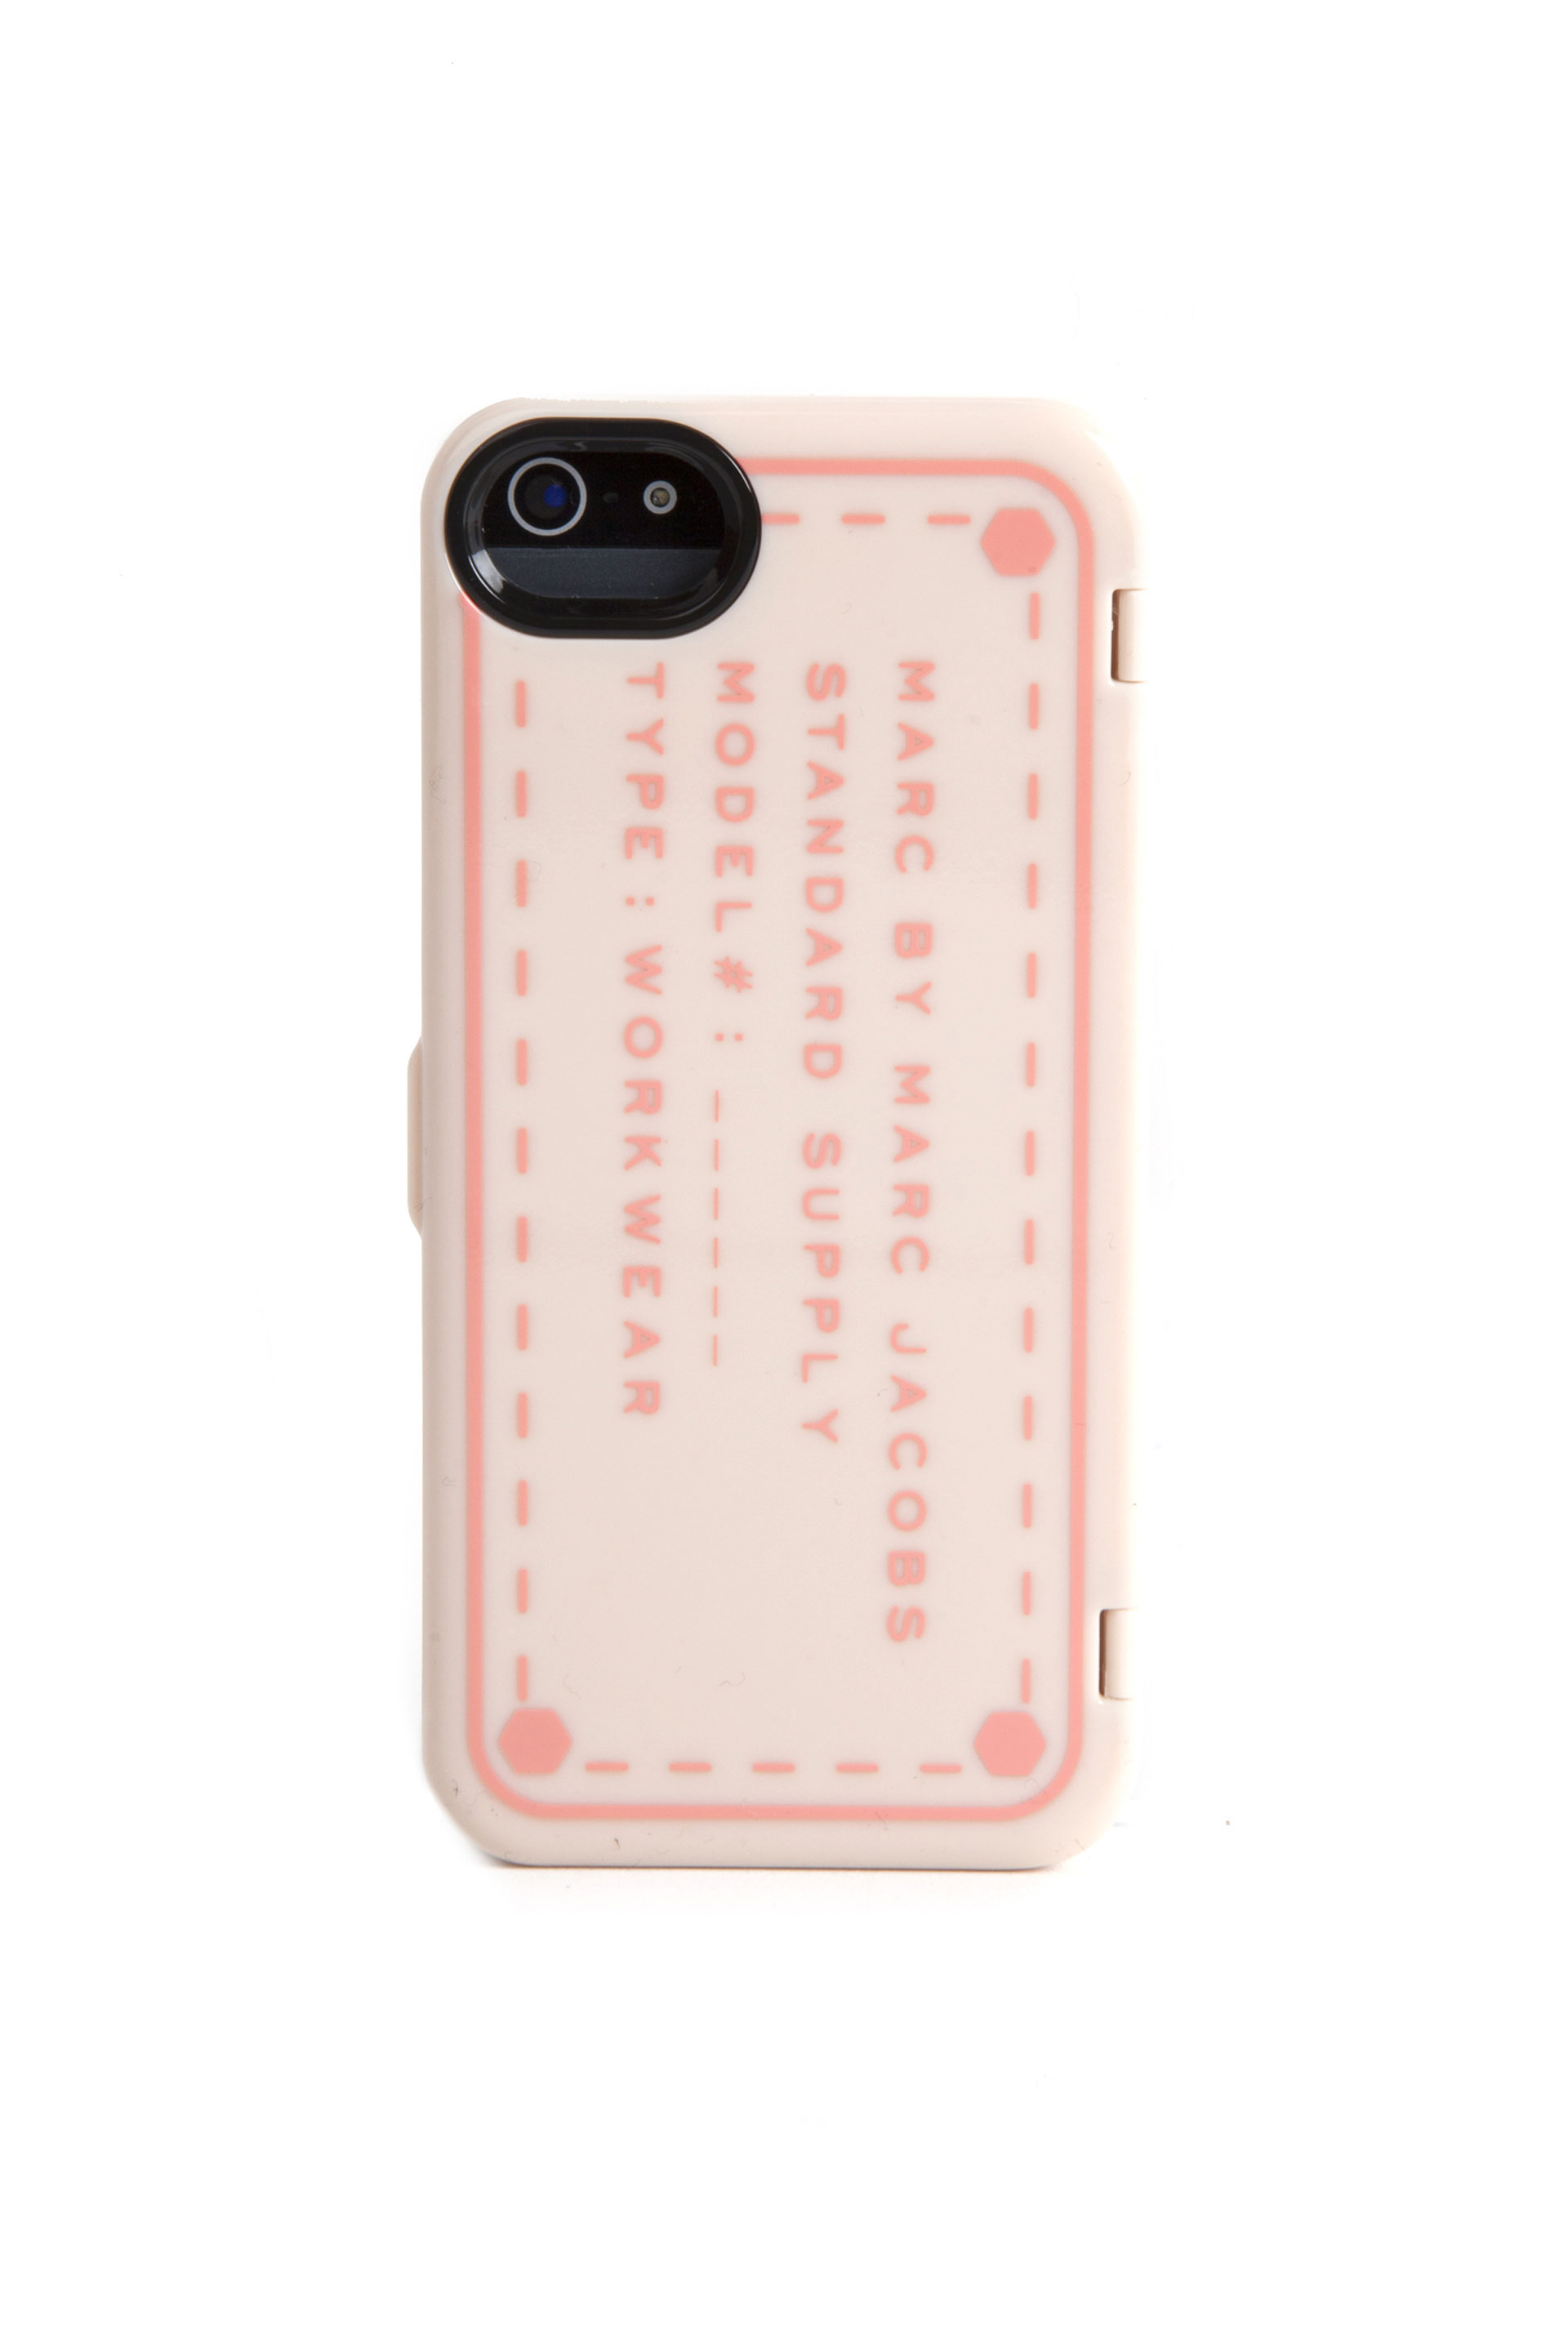 Marc Jacobs Application Iphone Aqnmk I